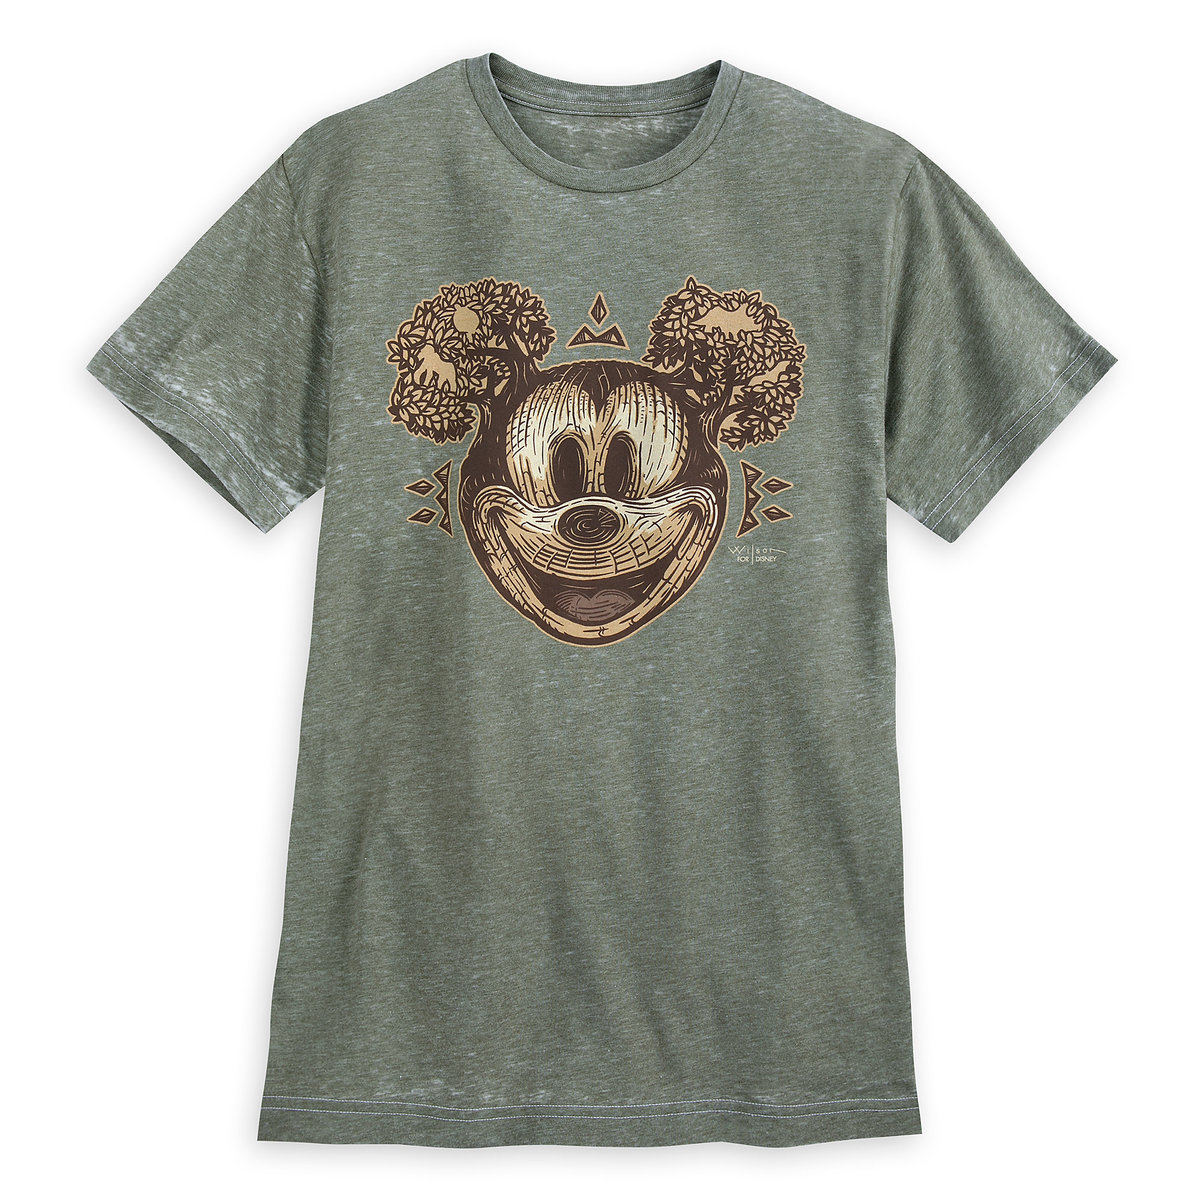 a059d15d9 Mickey Mouse T Shirts For Guys - DREAMWORKS